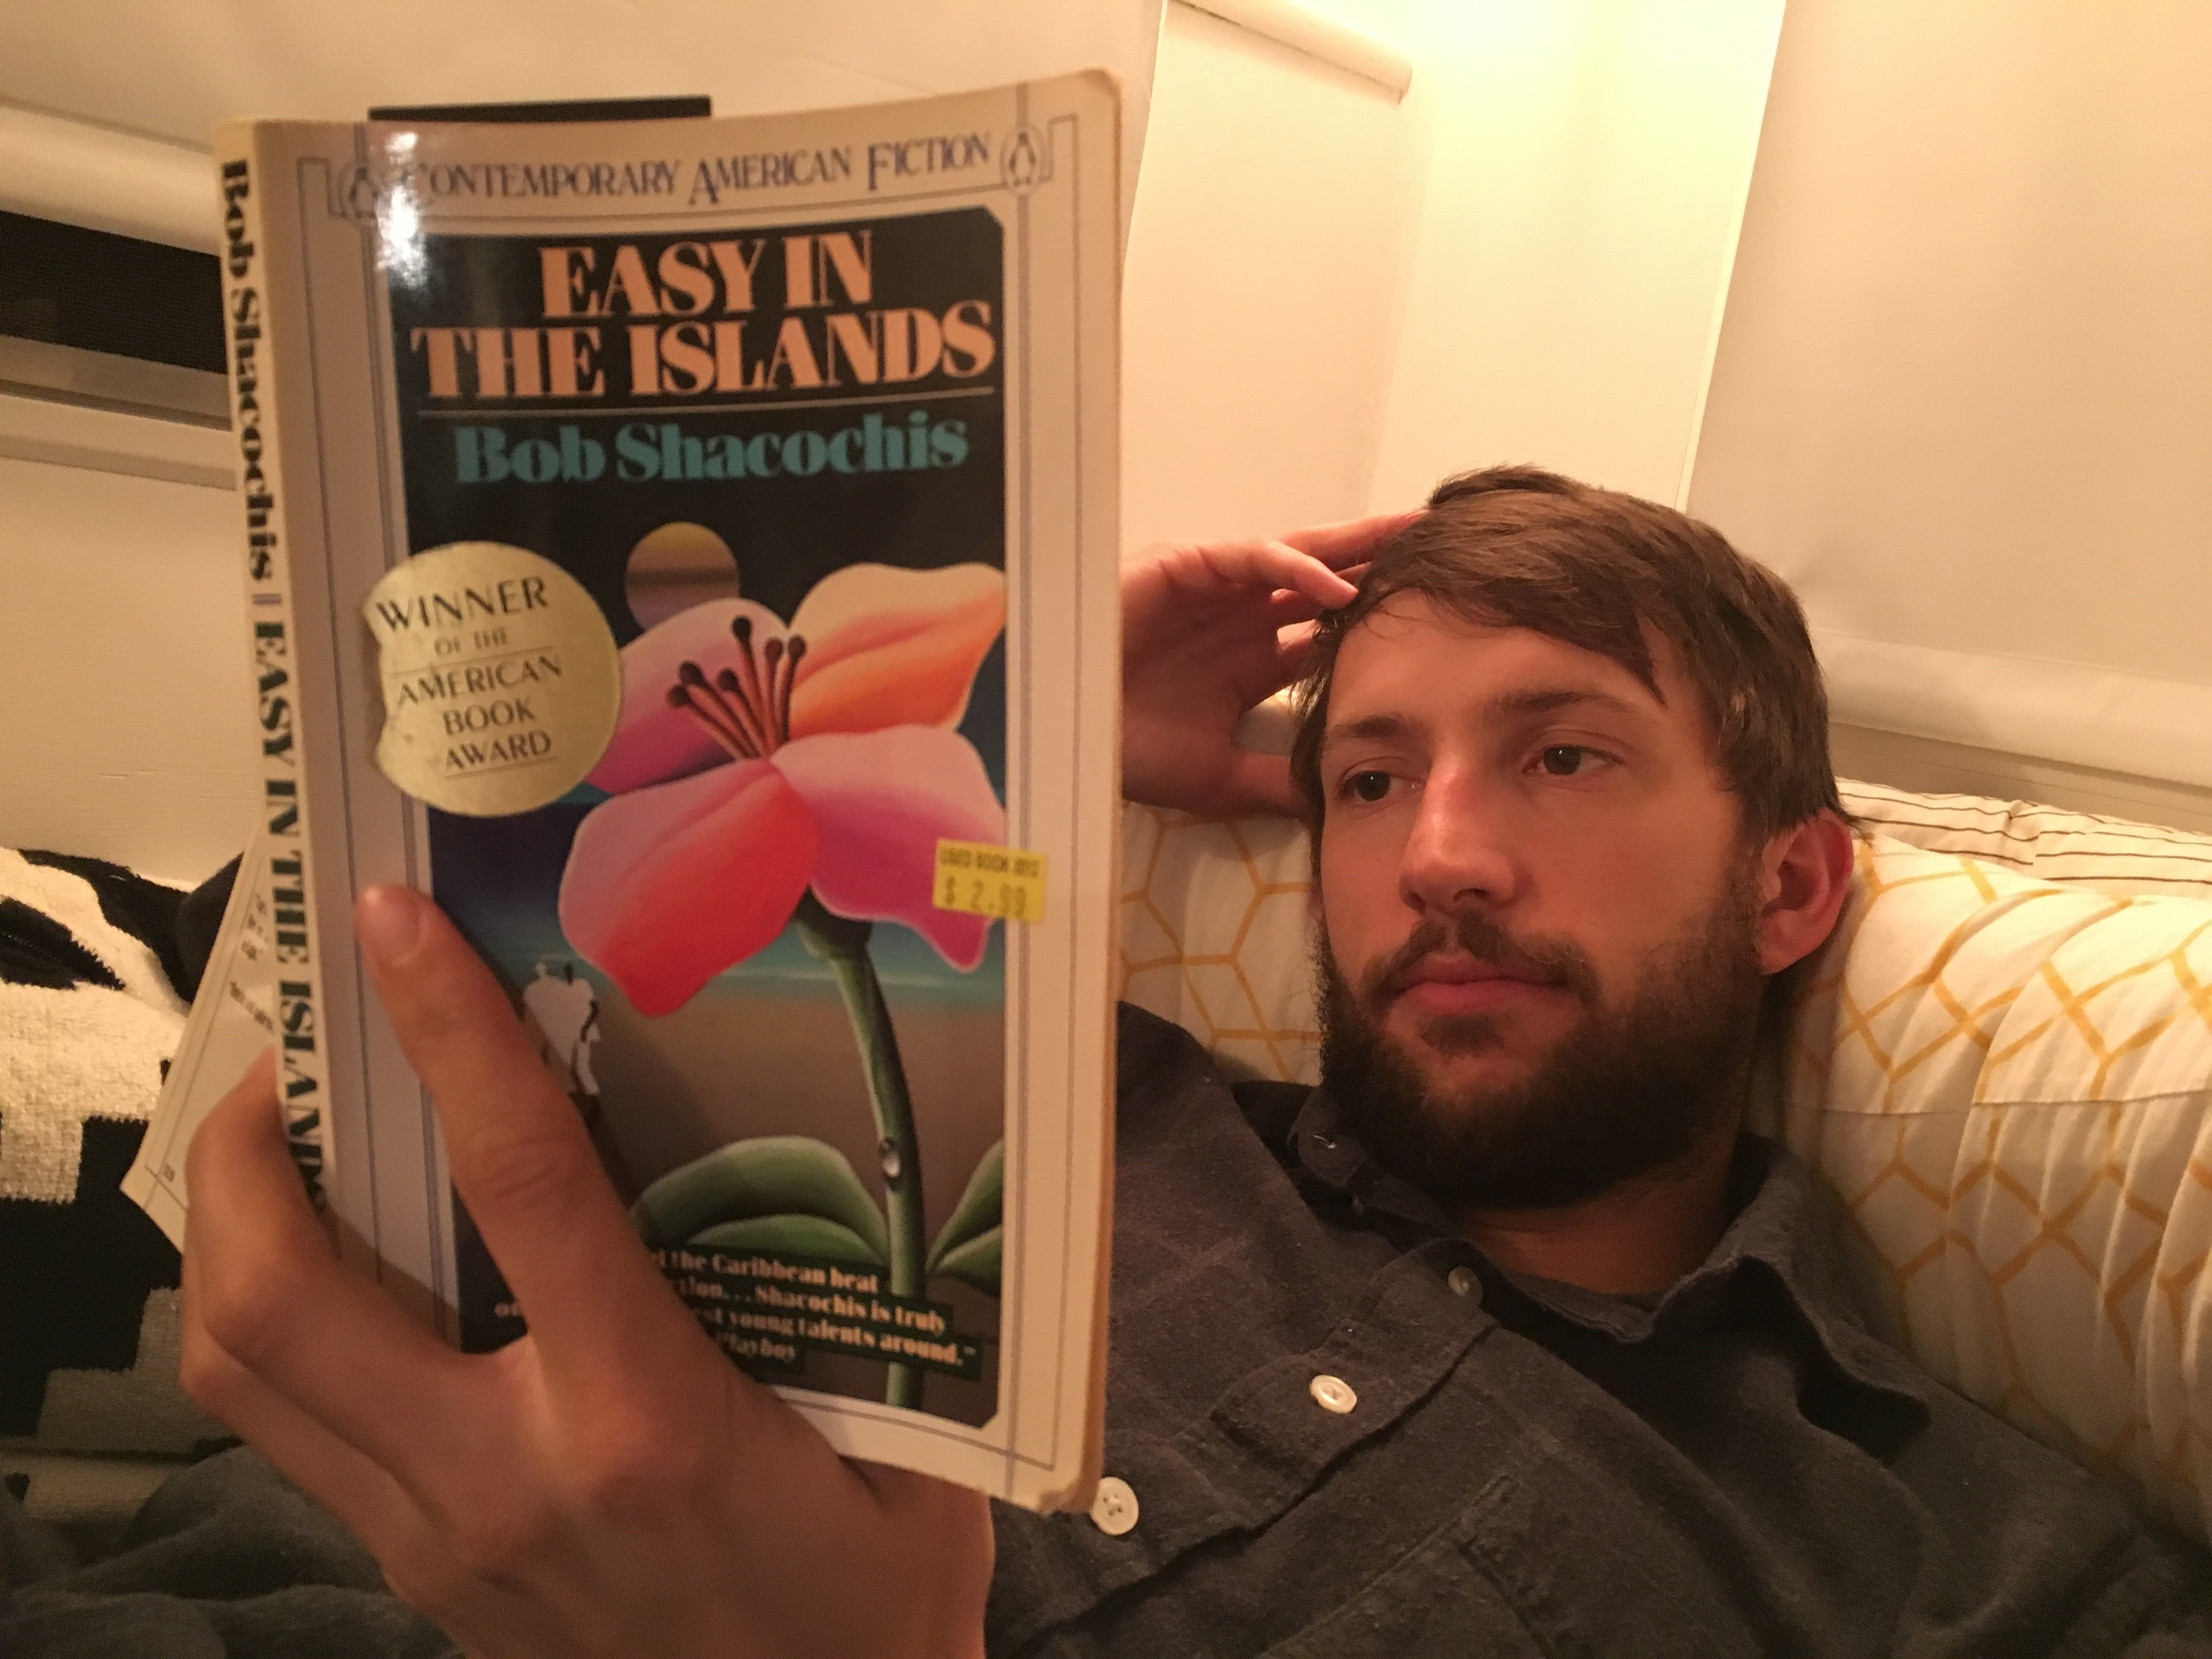 Carson reading Easy in the Islands.